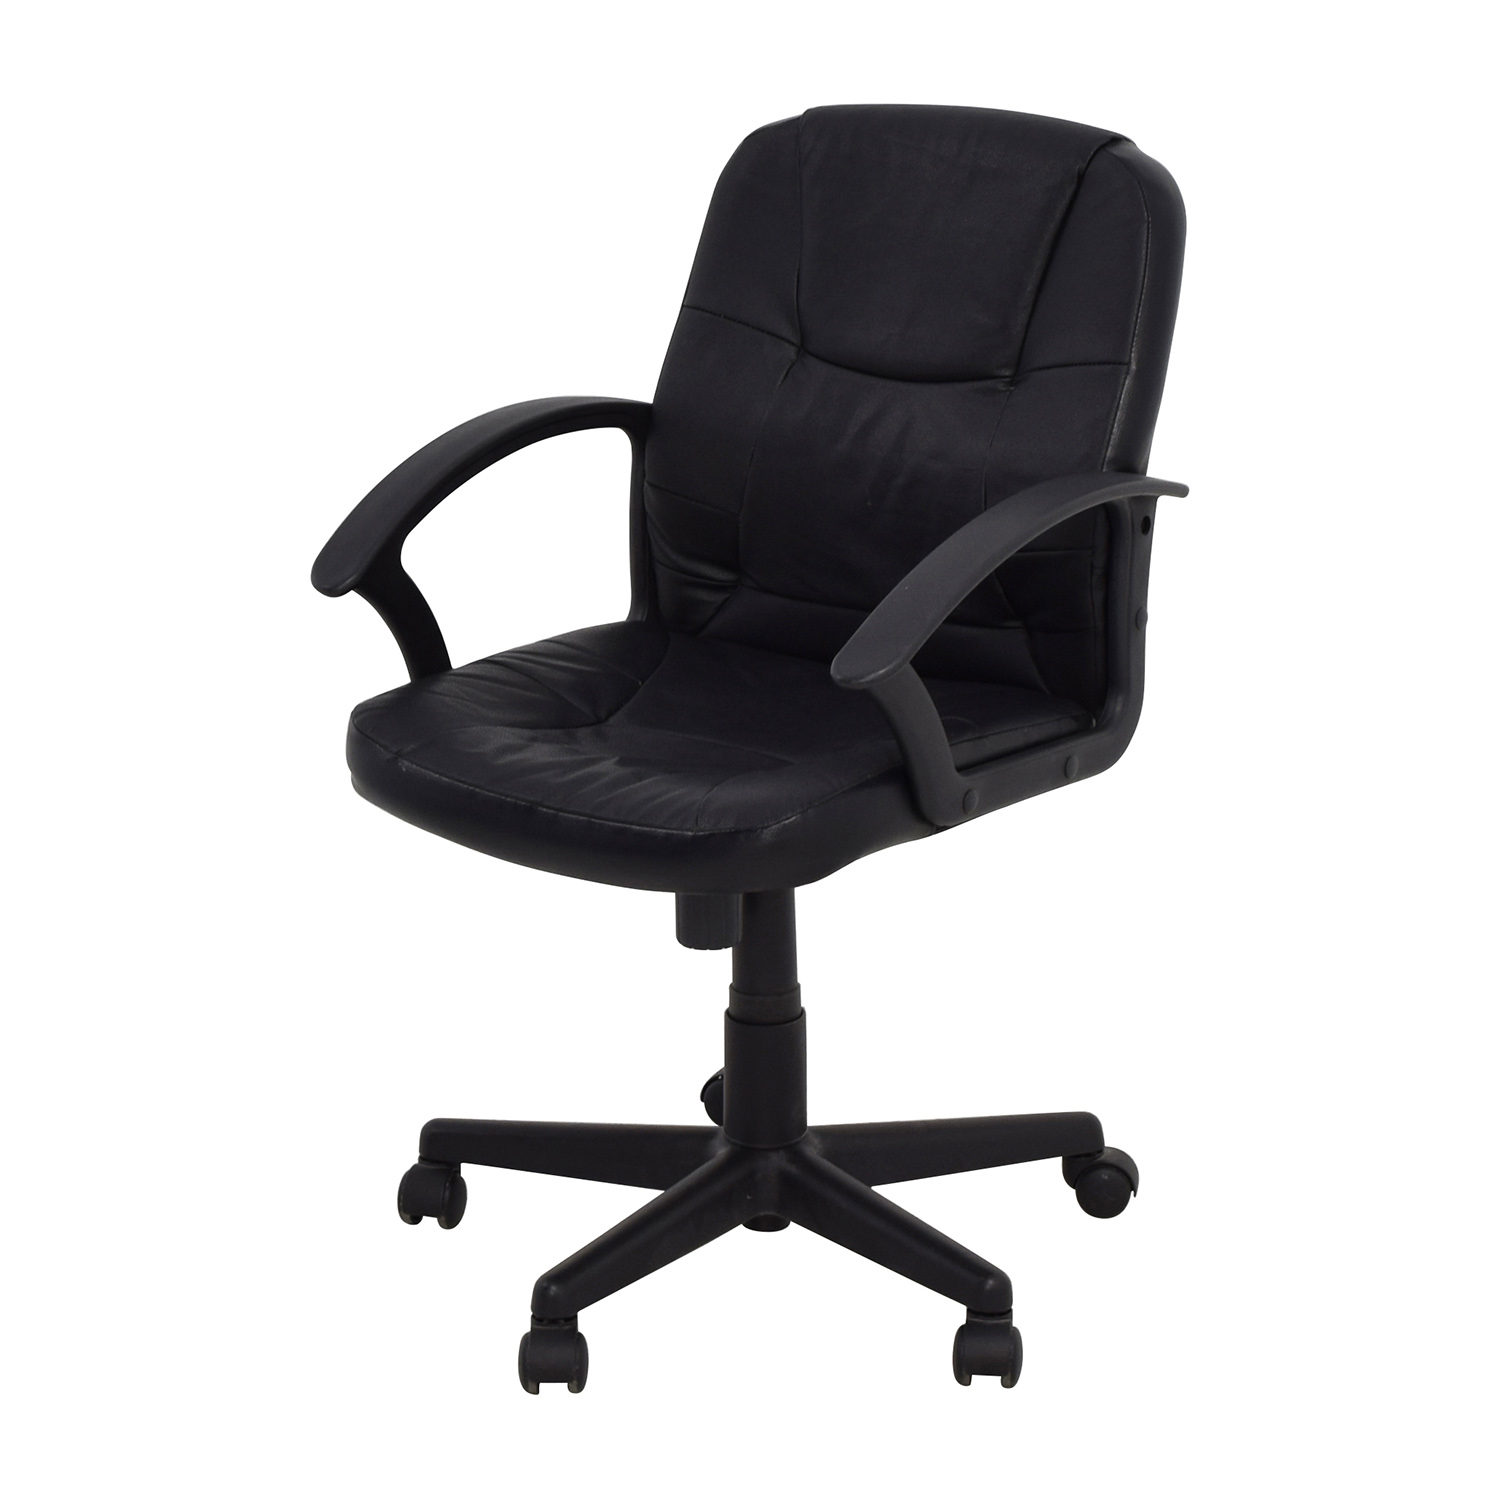 75 Off Black Leather Adjustable Desk Chair Chairs